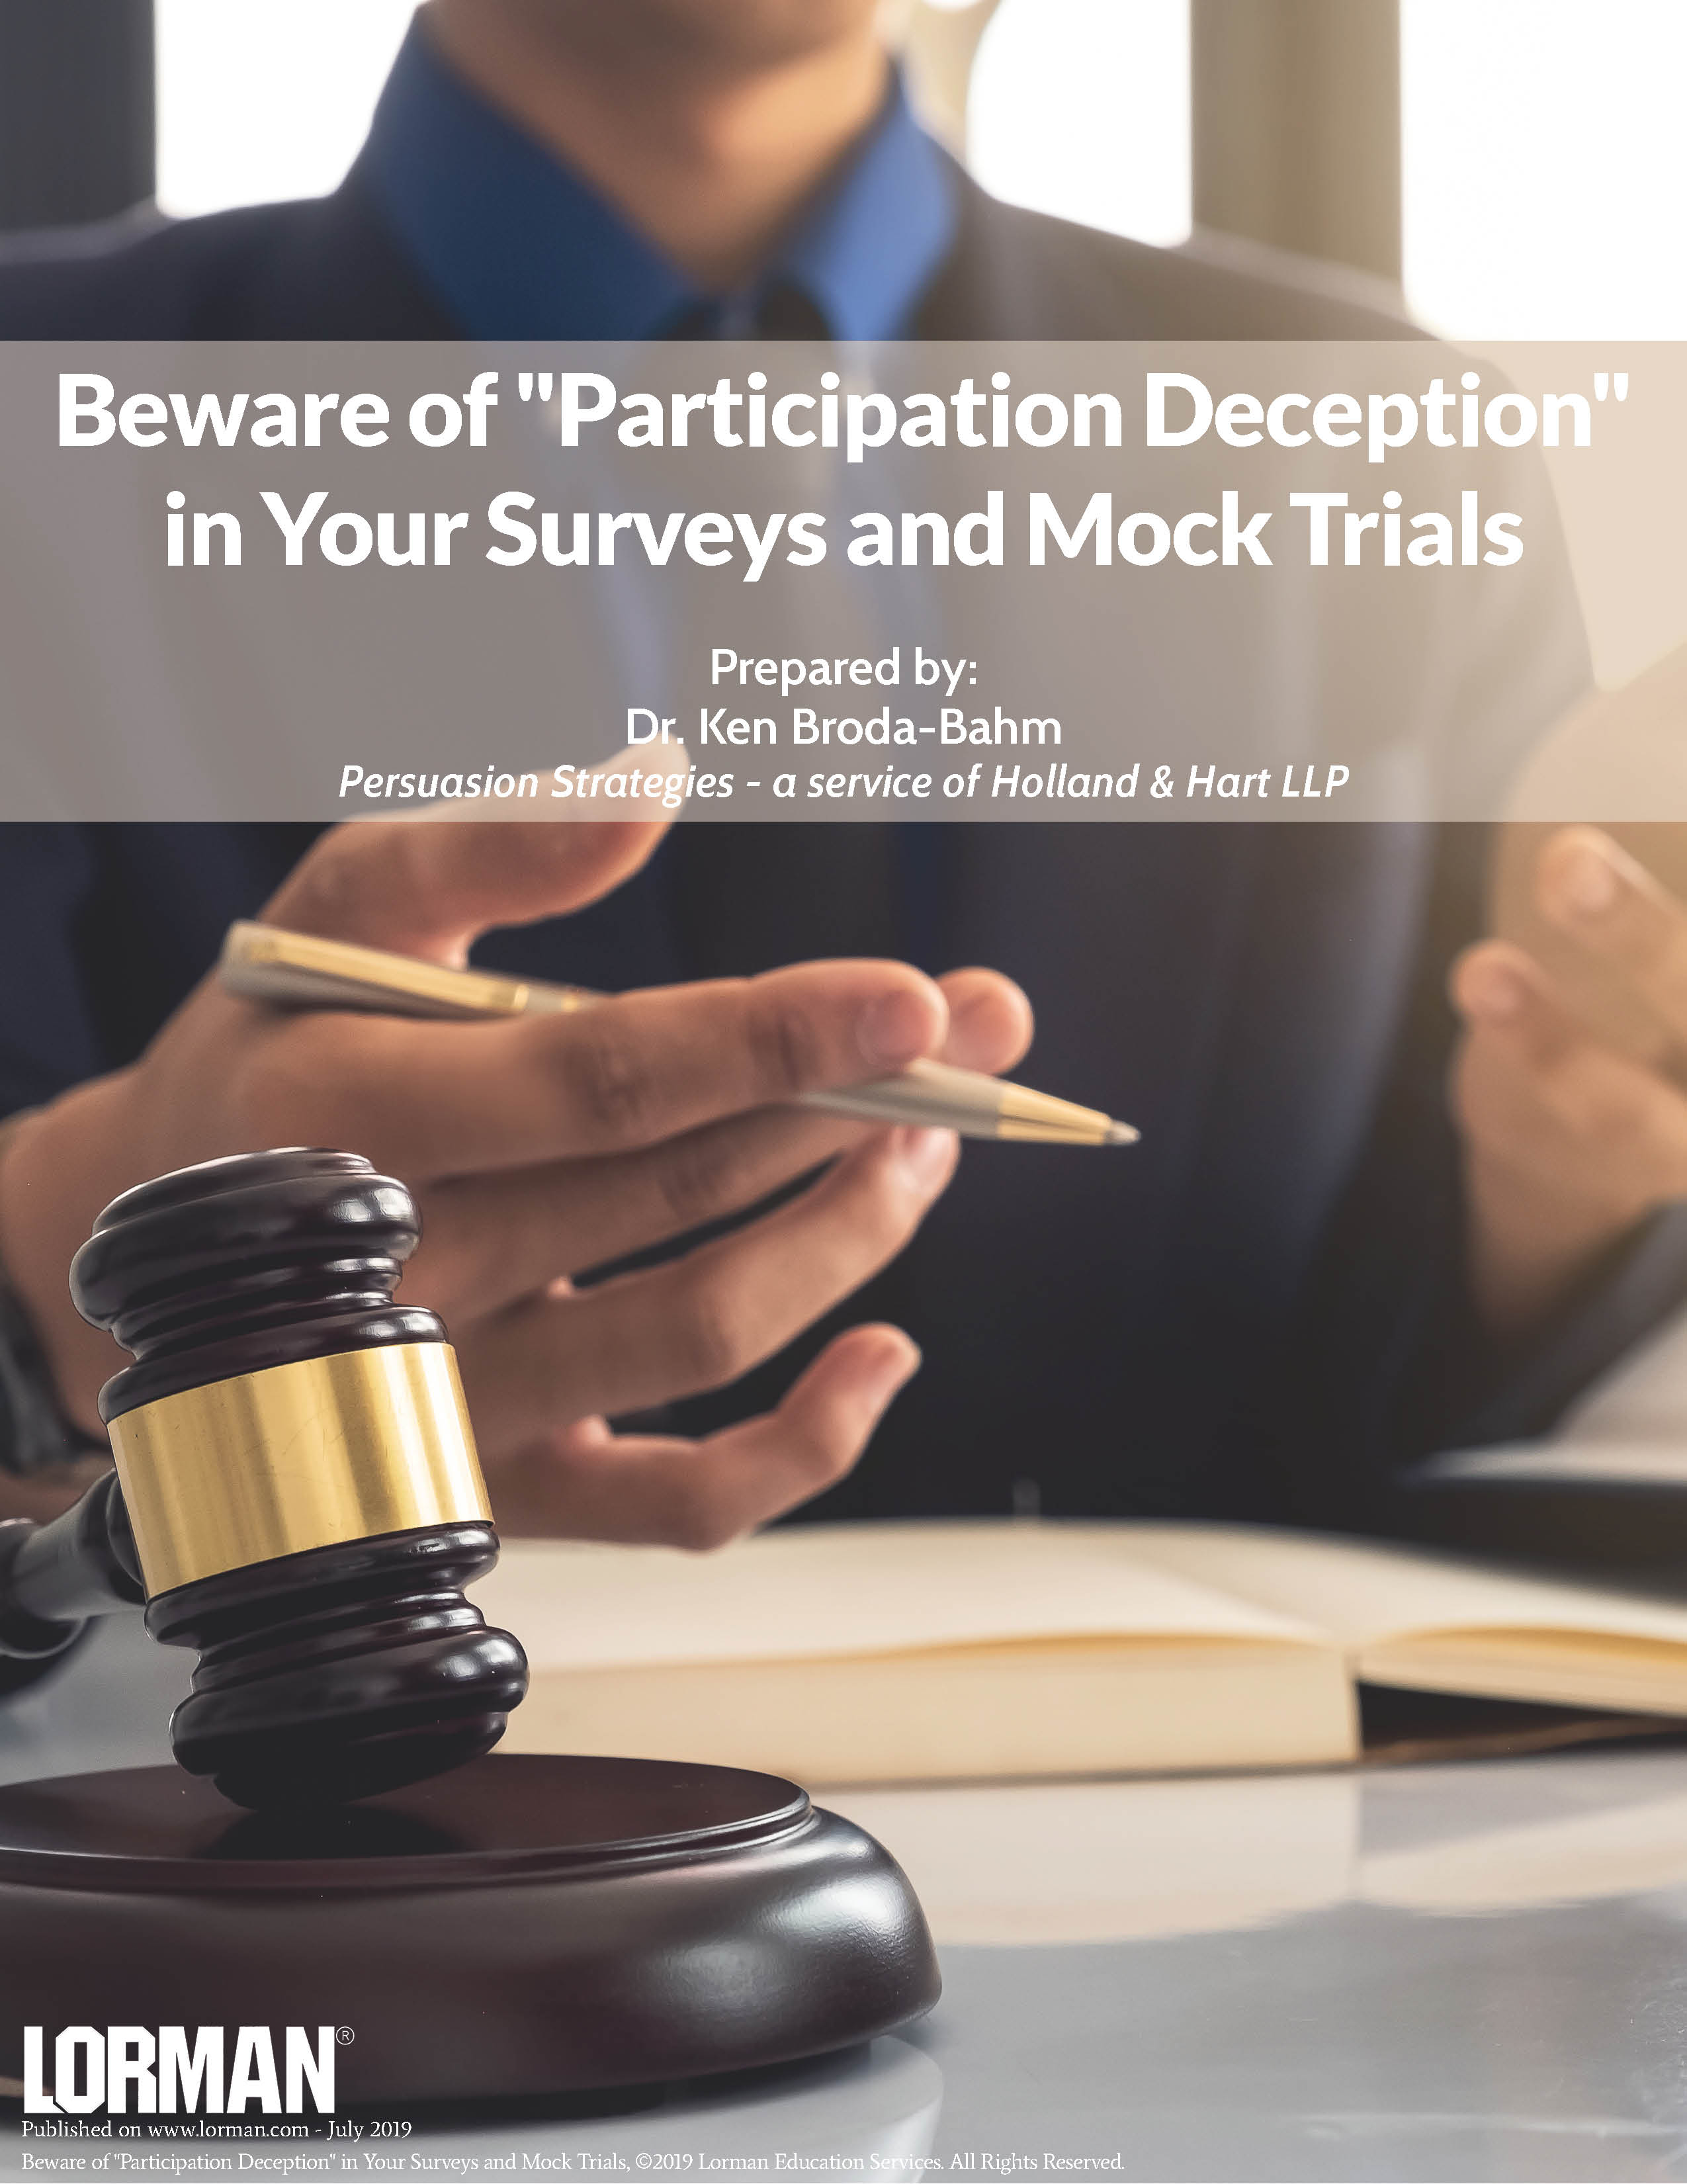 Beware of Participation Deception in Your Surveys and Mock Trials